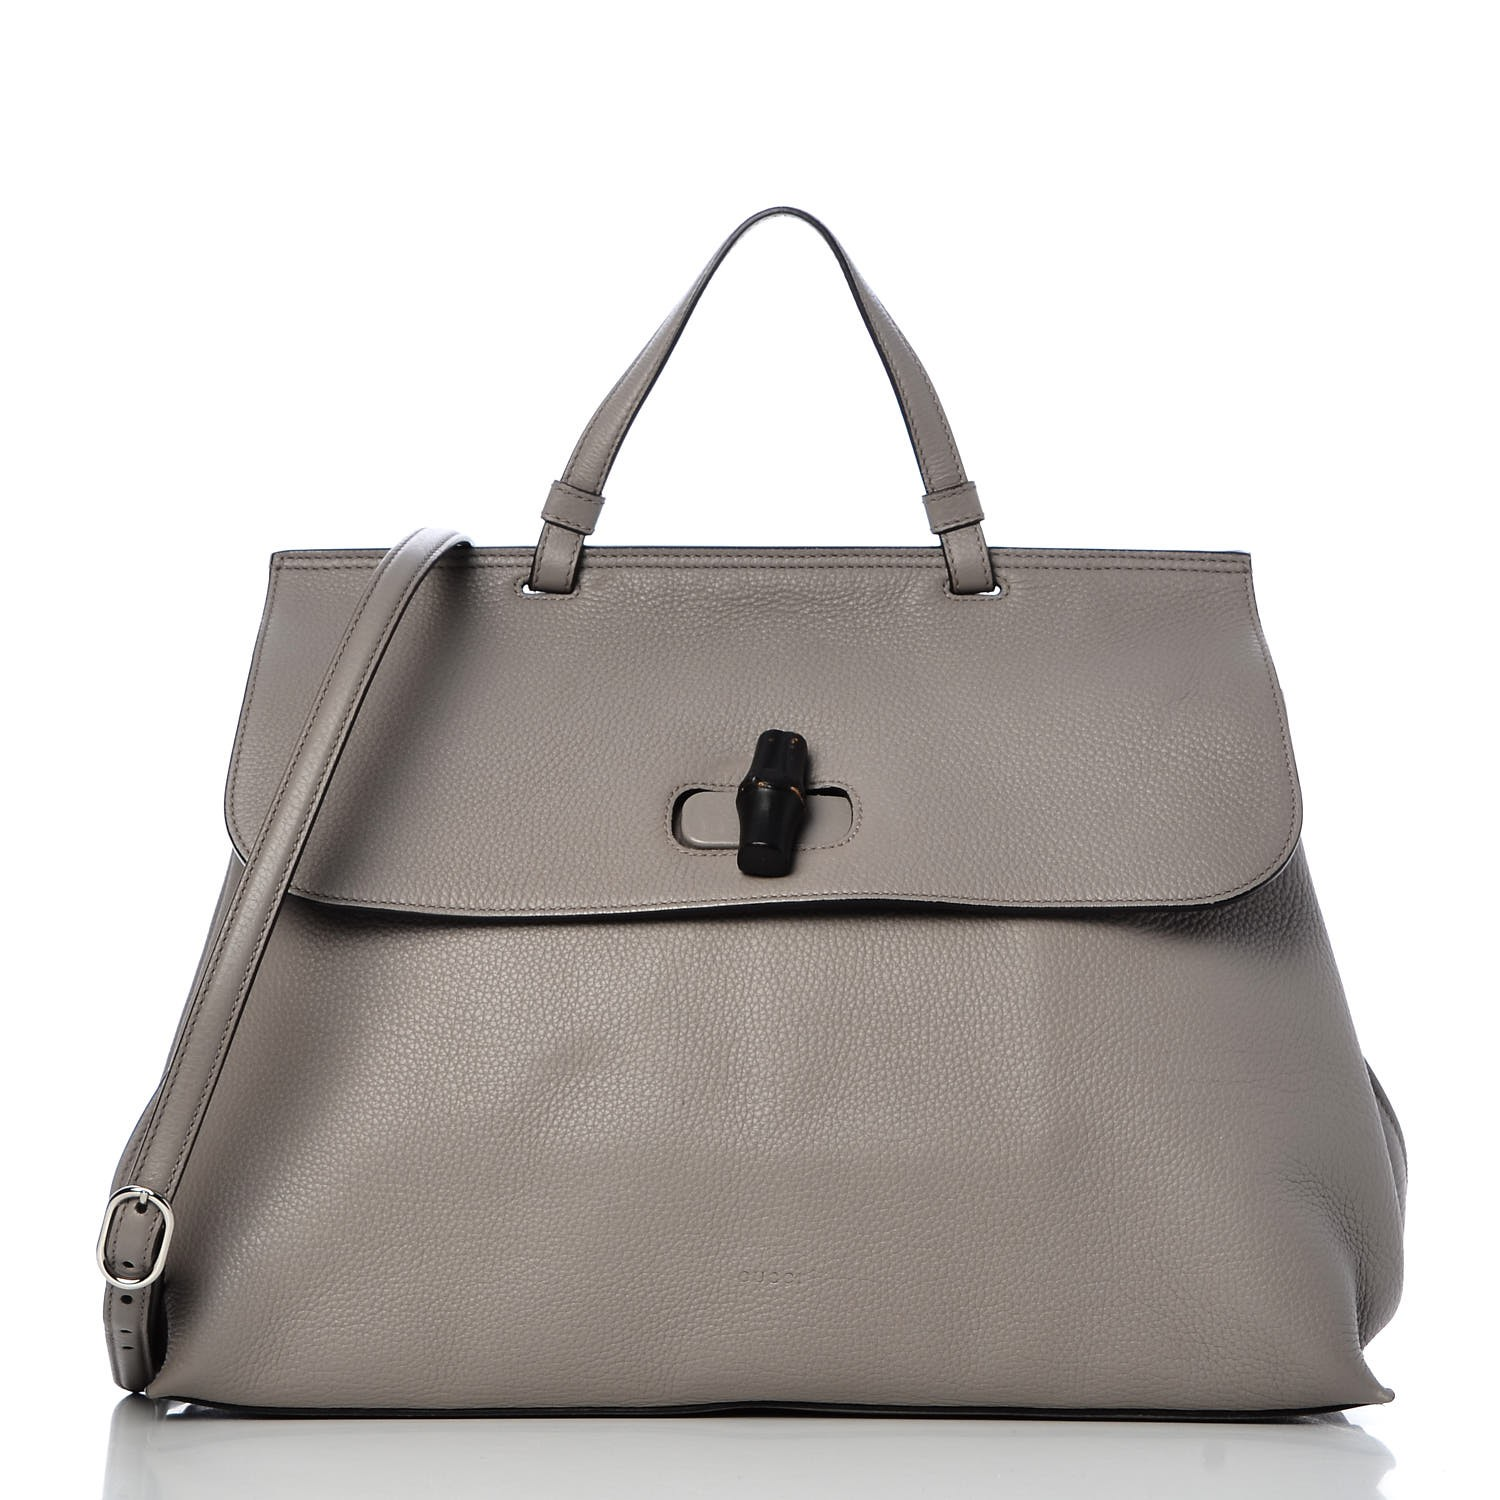 781e33868bf0c7 GUCCI Pebbled Calfskin Large Bamboo Daily Top Handle Bag Light Grey 295050